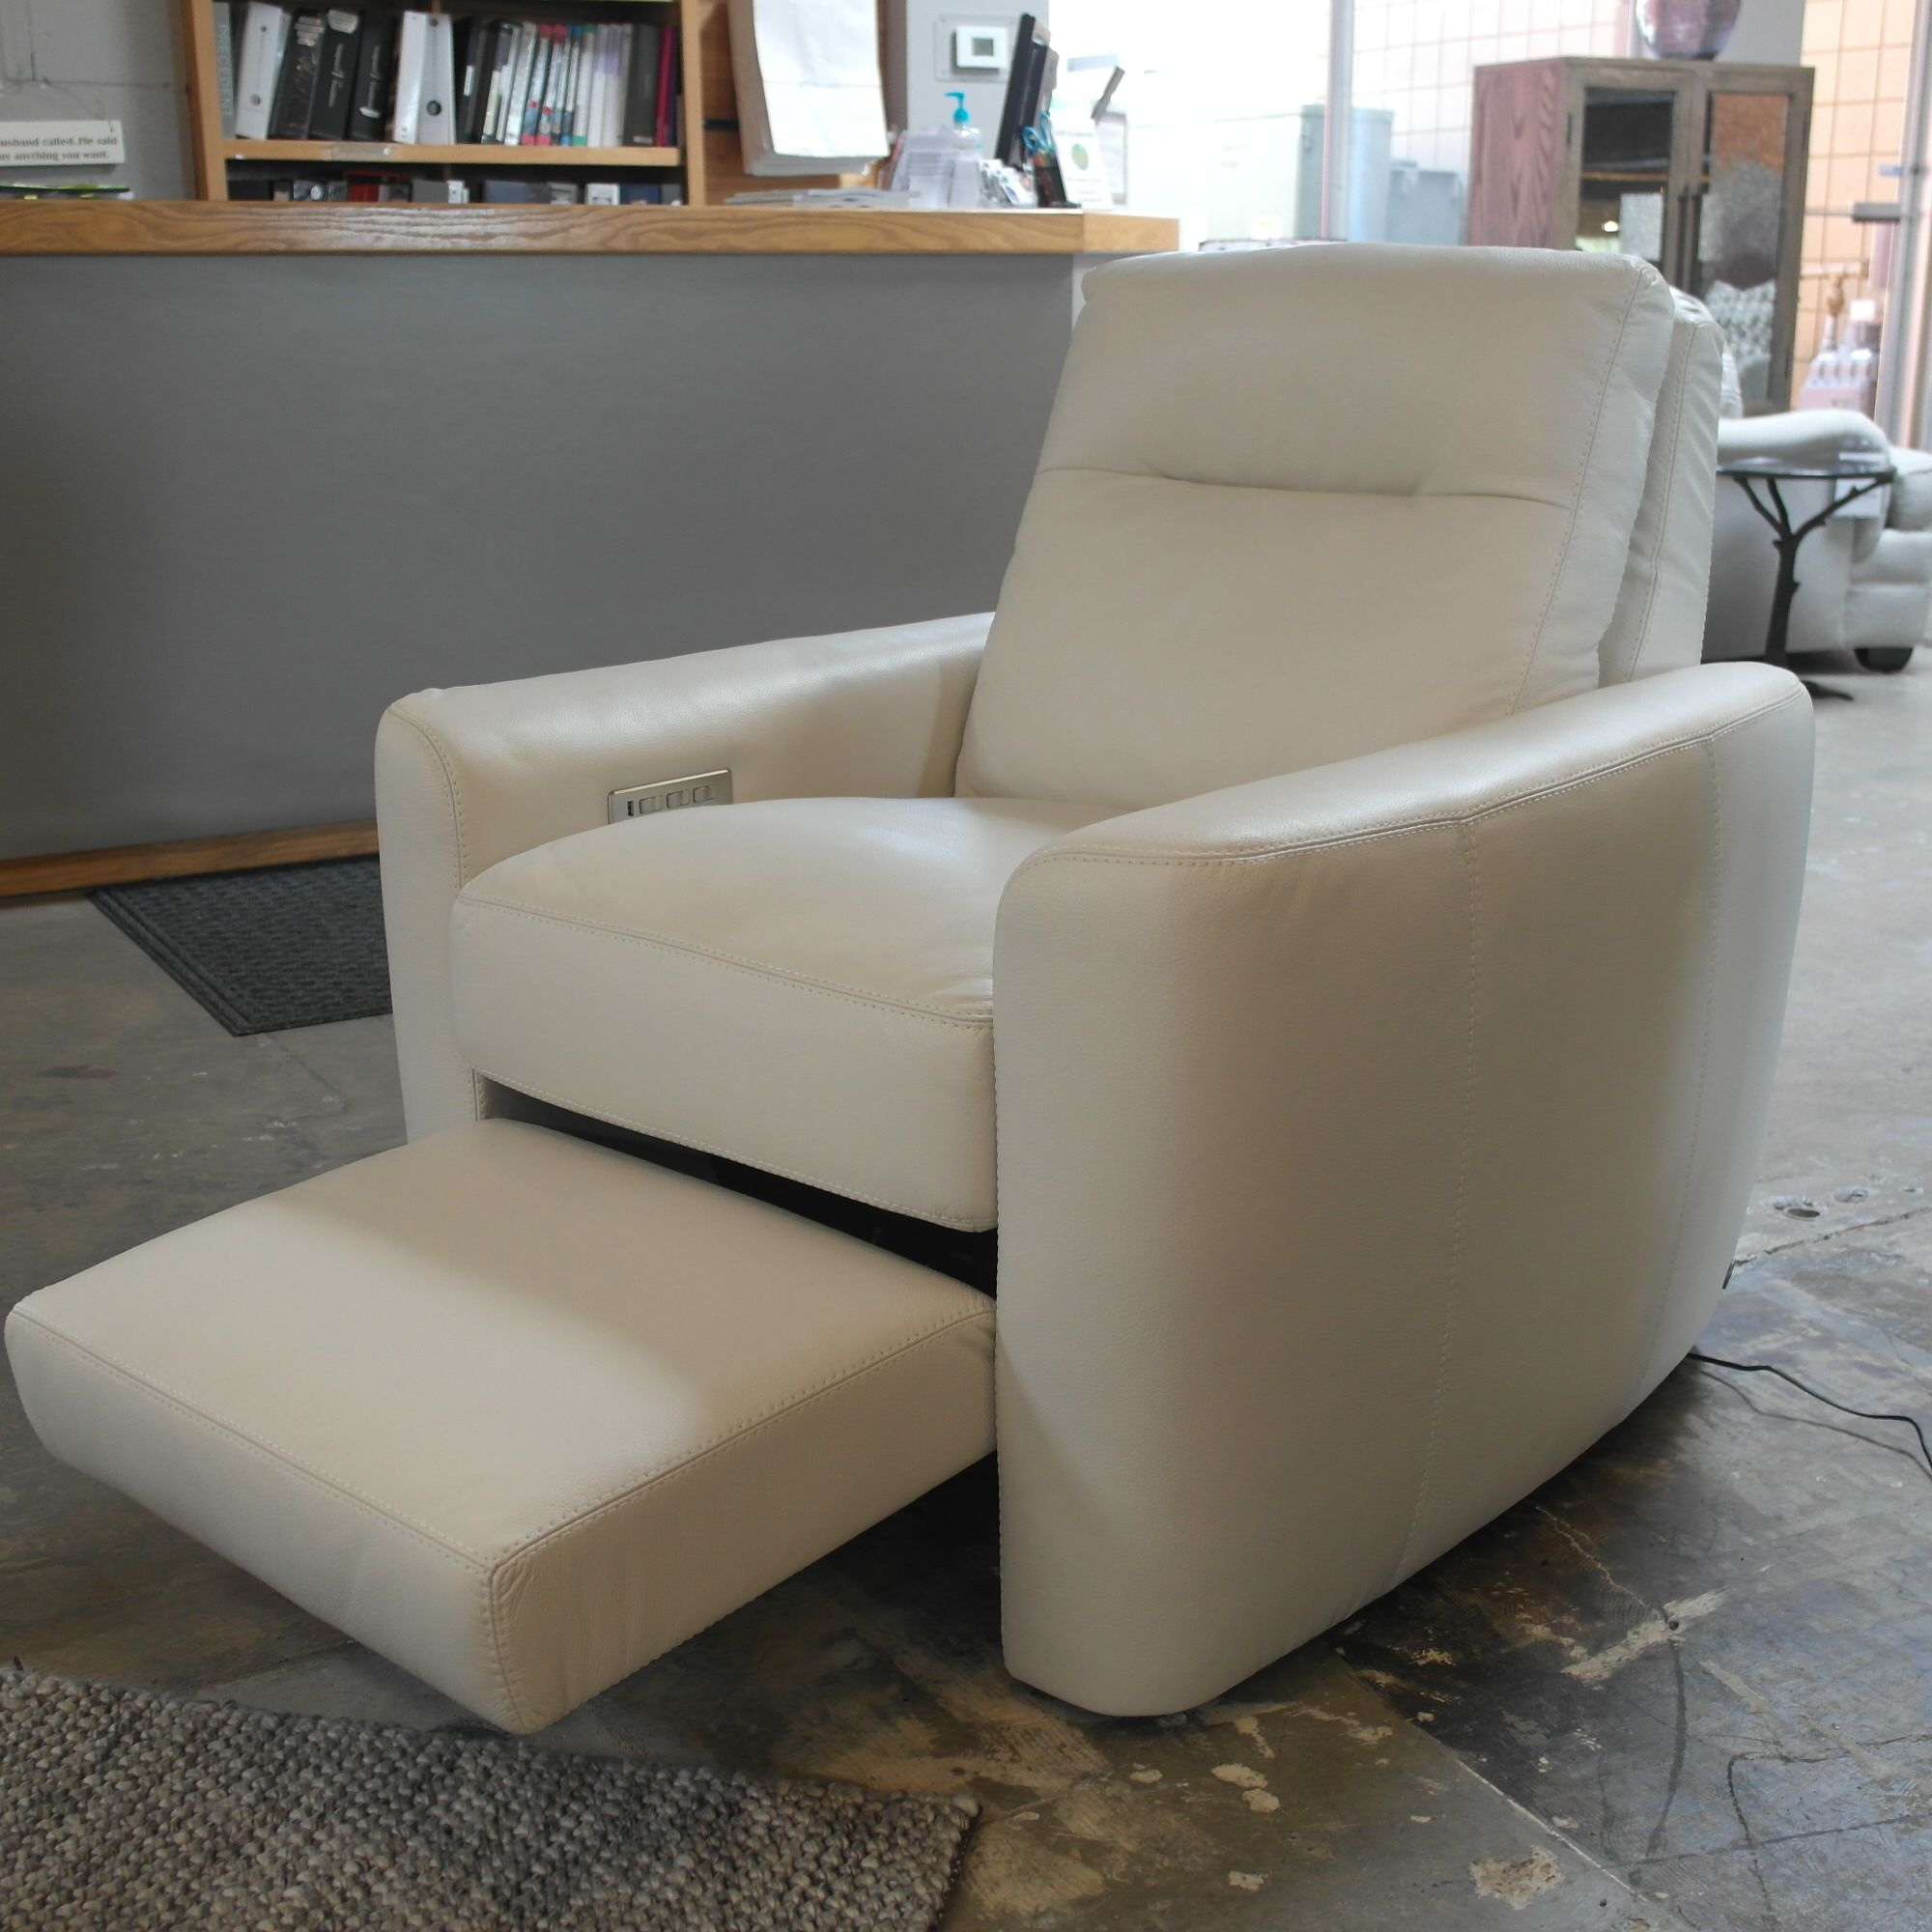 Cool Chelsea Recliner By Design Now Leather Recliner Pdpeps Interior Chair Design Pdpepsorg